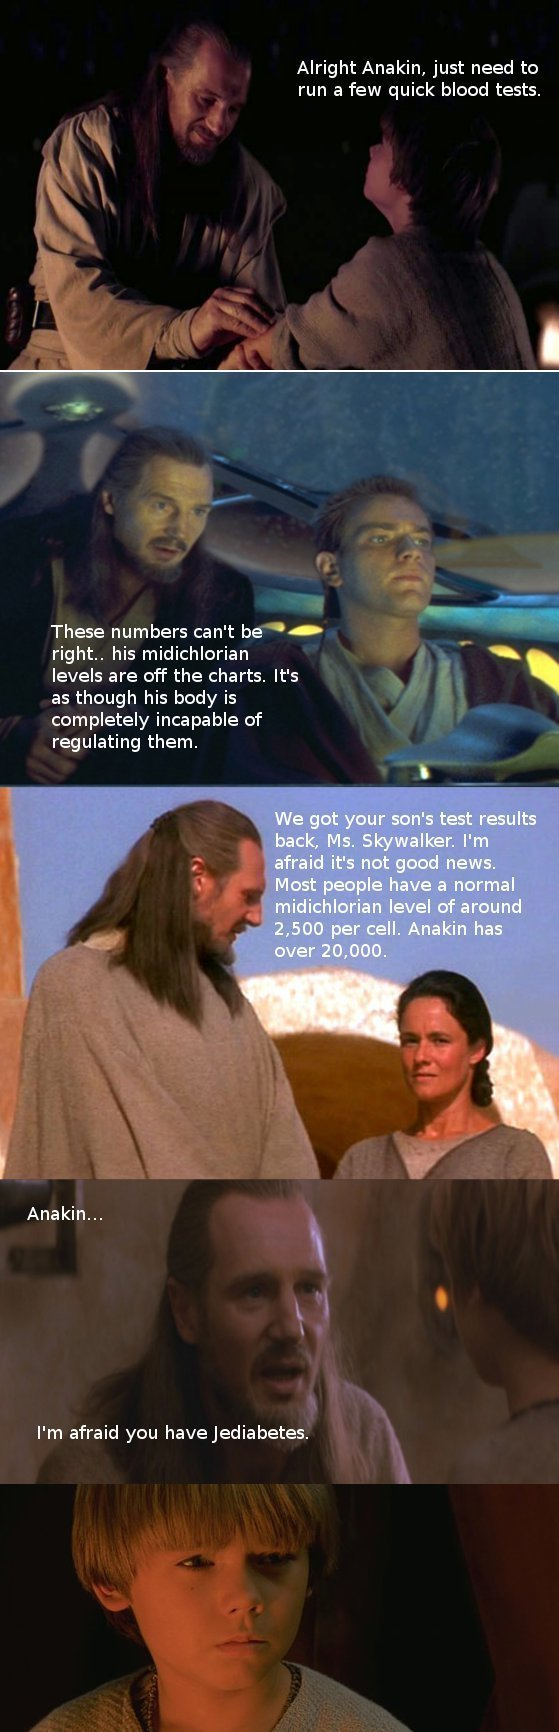 "Qui-Gon Jinn: ""Anakin, your midi-chlorians are off the chart. I'm afraid you have... Je-diabetes."""